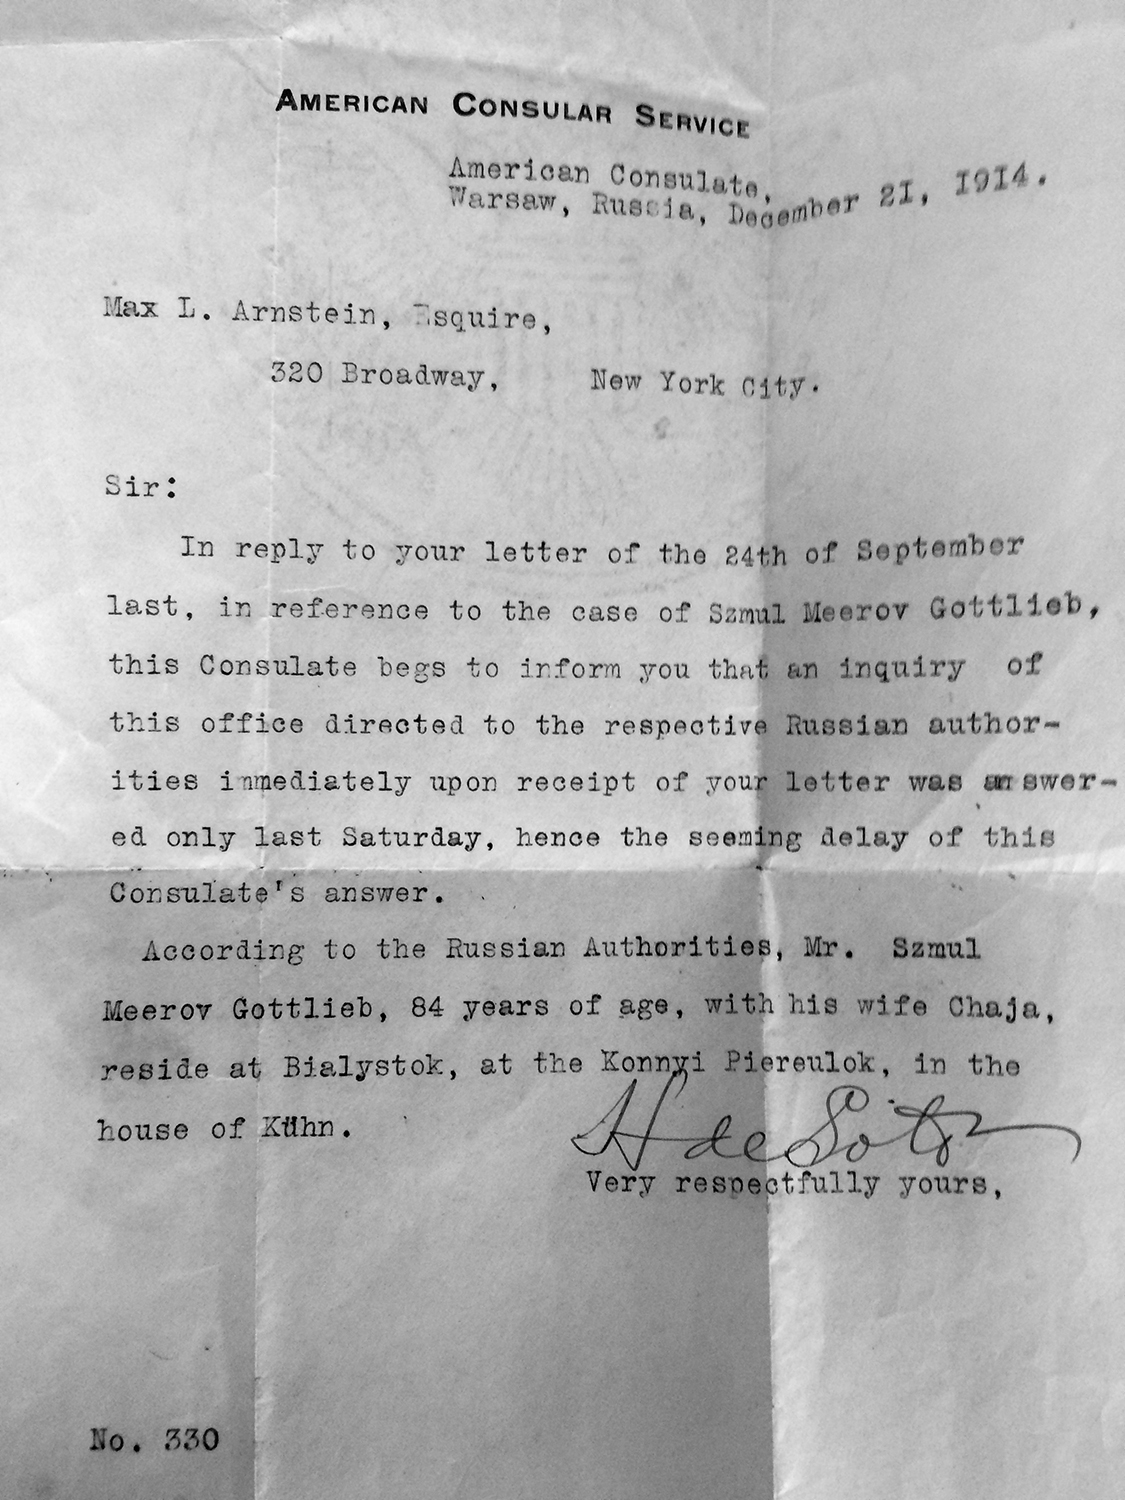 Letter About Status of Szmuel and Chaja Gottlieb